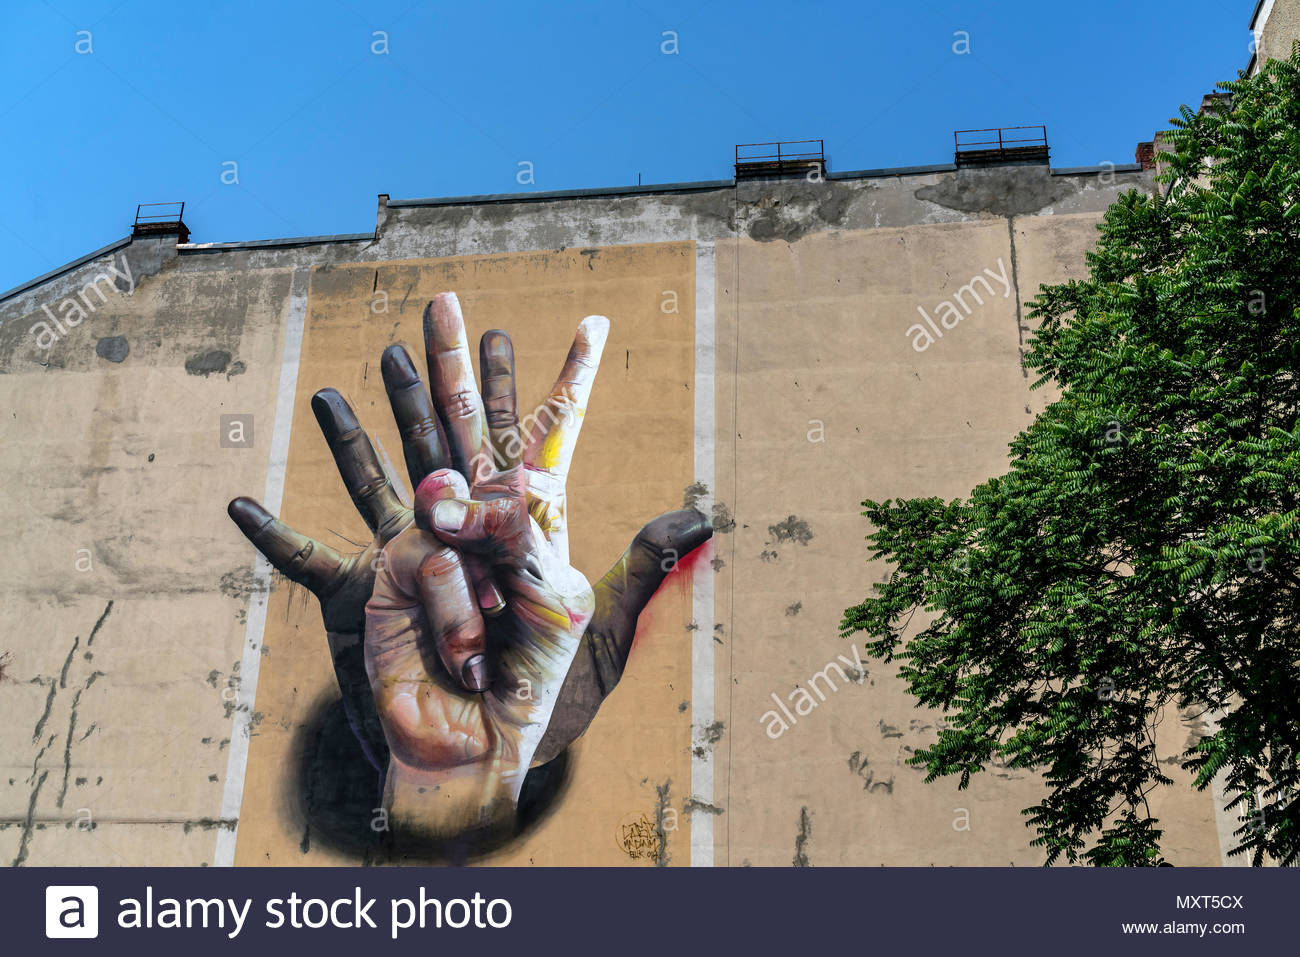 Wall Painting, Graffiti, Kreuzberg, Berlin, Deutschland Stockbild